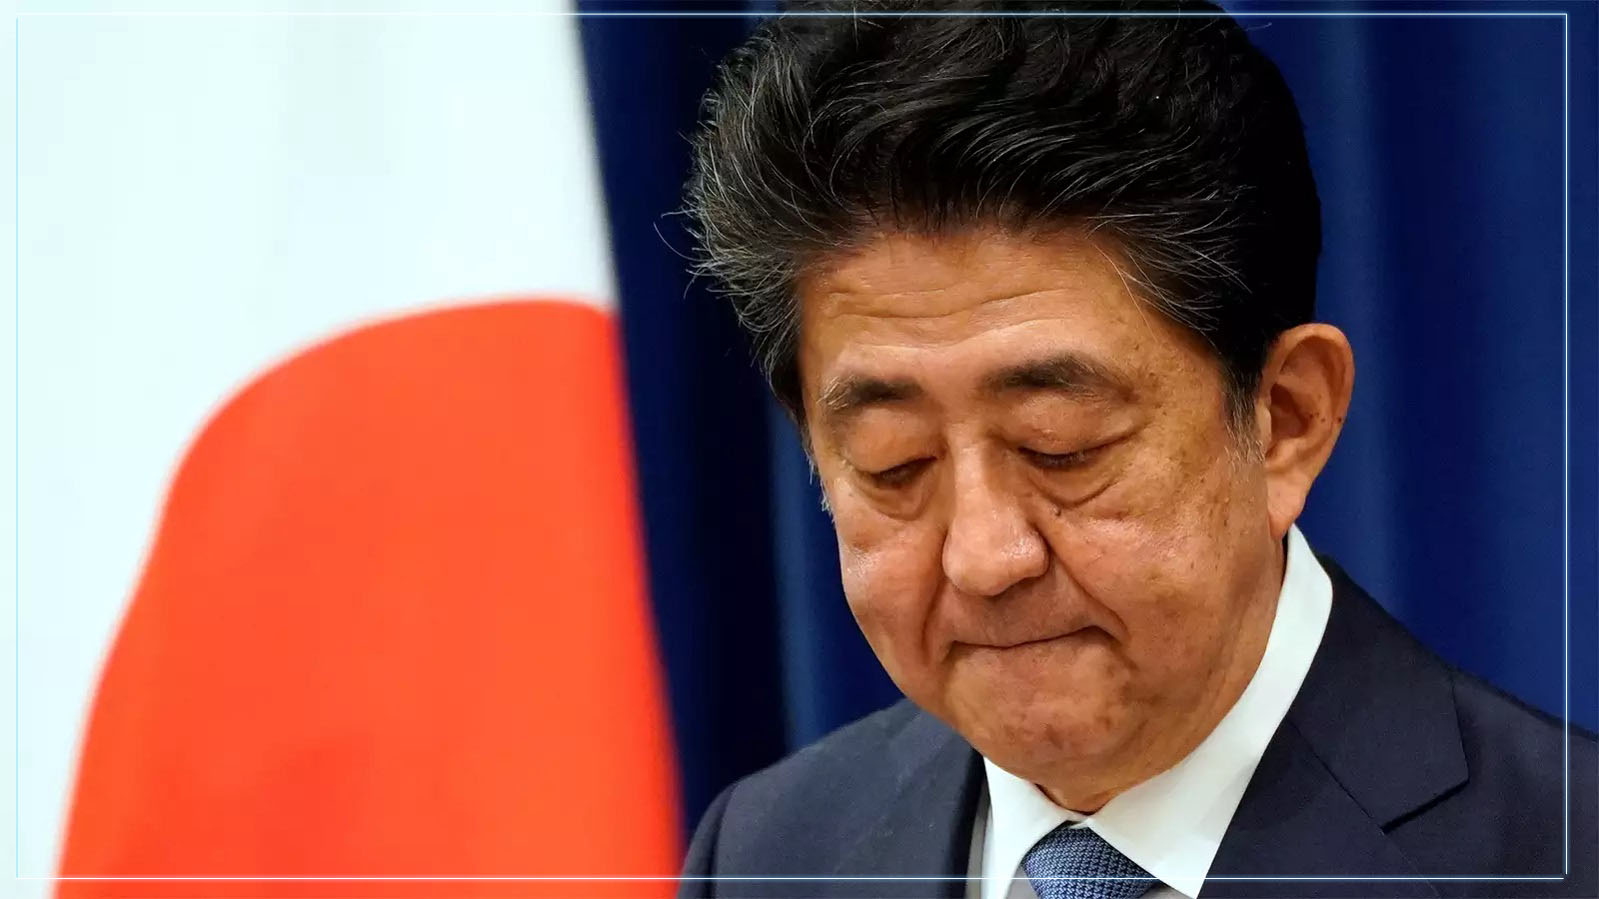 Shinzo Abe Resignation